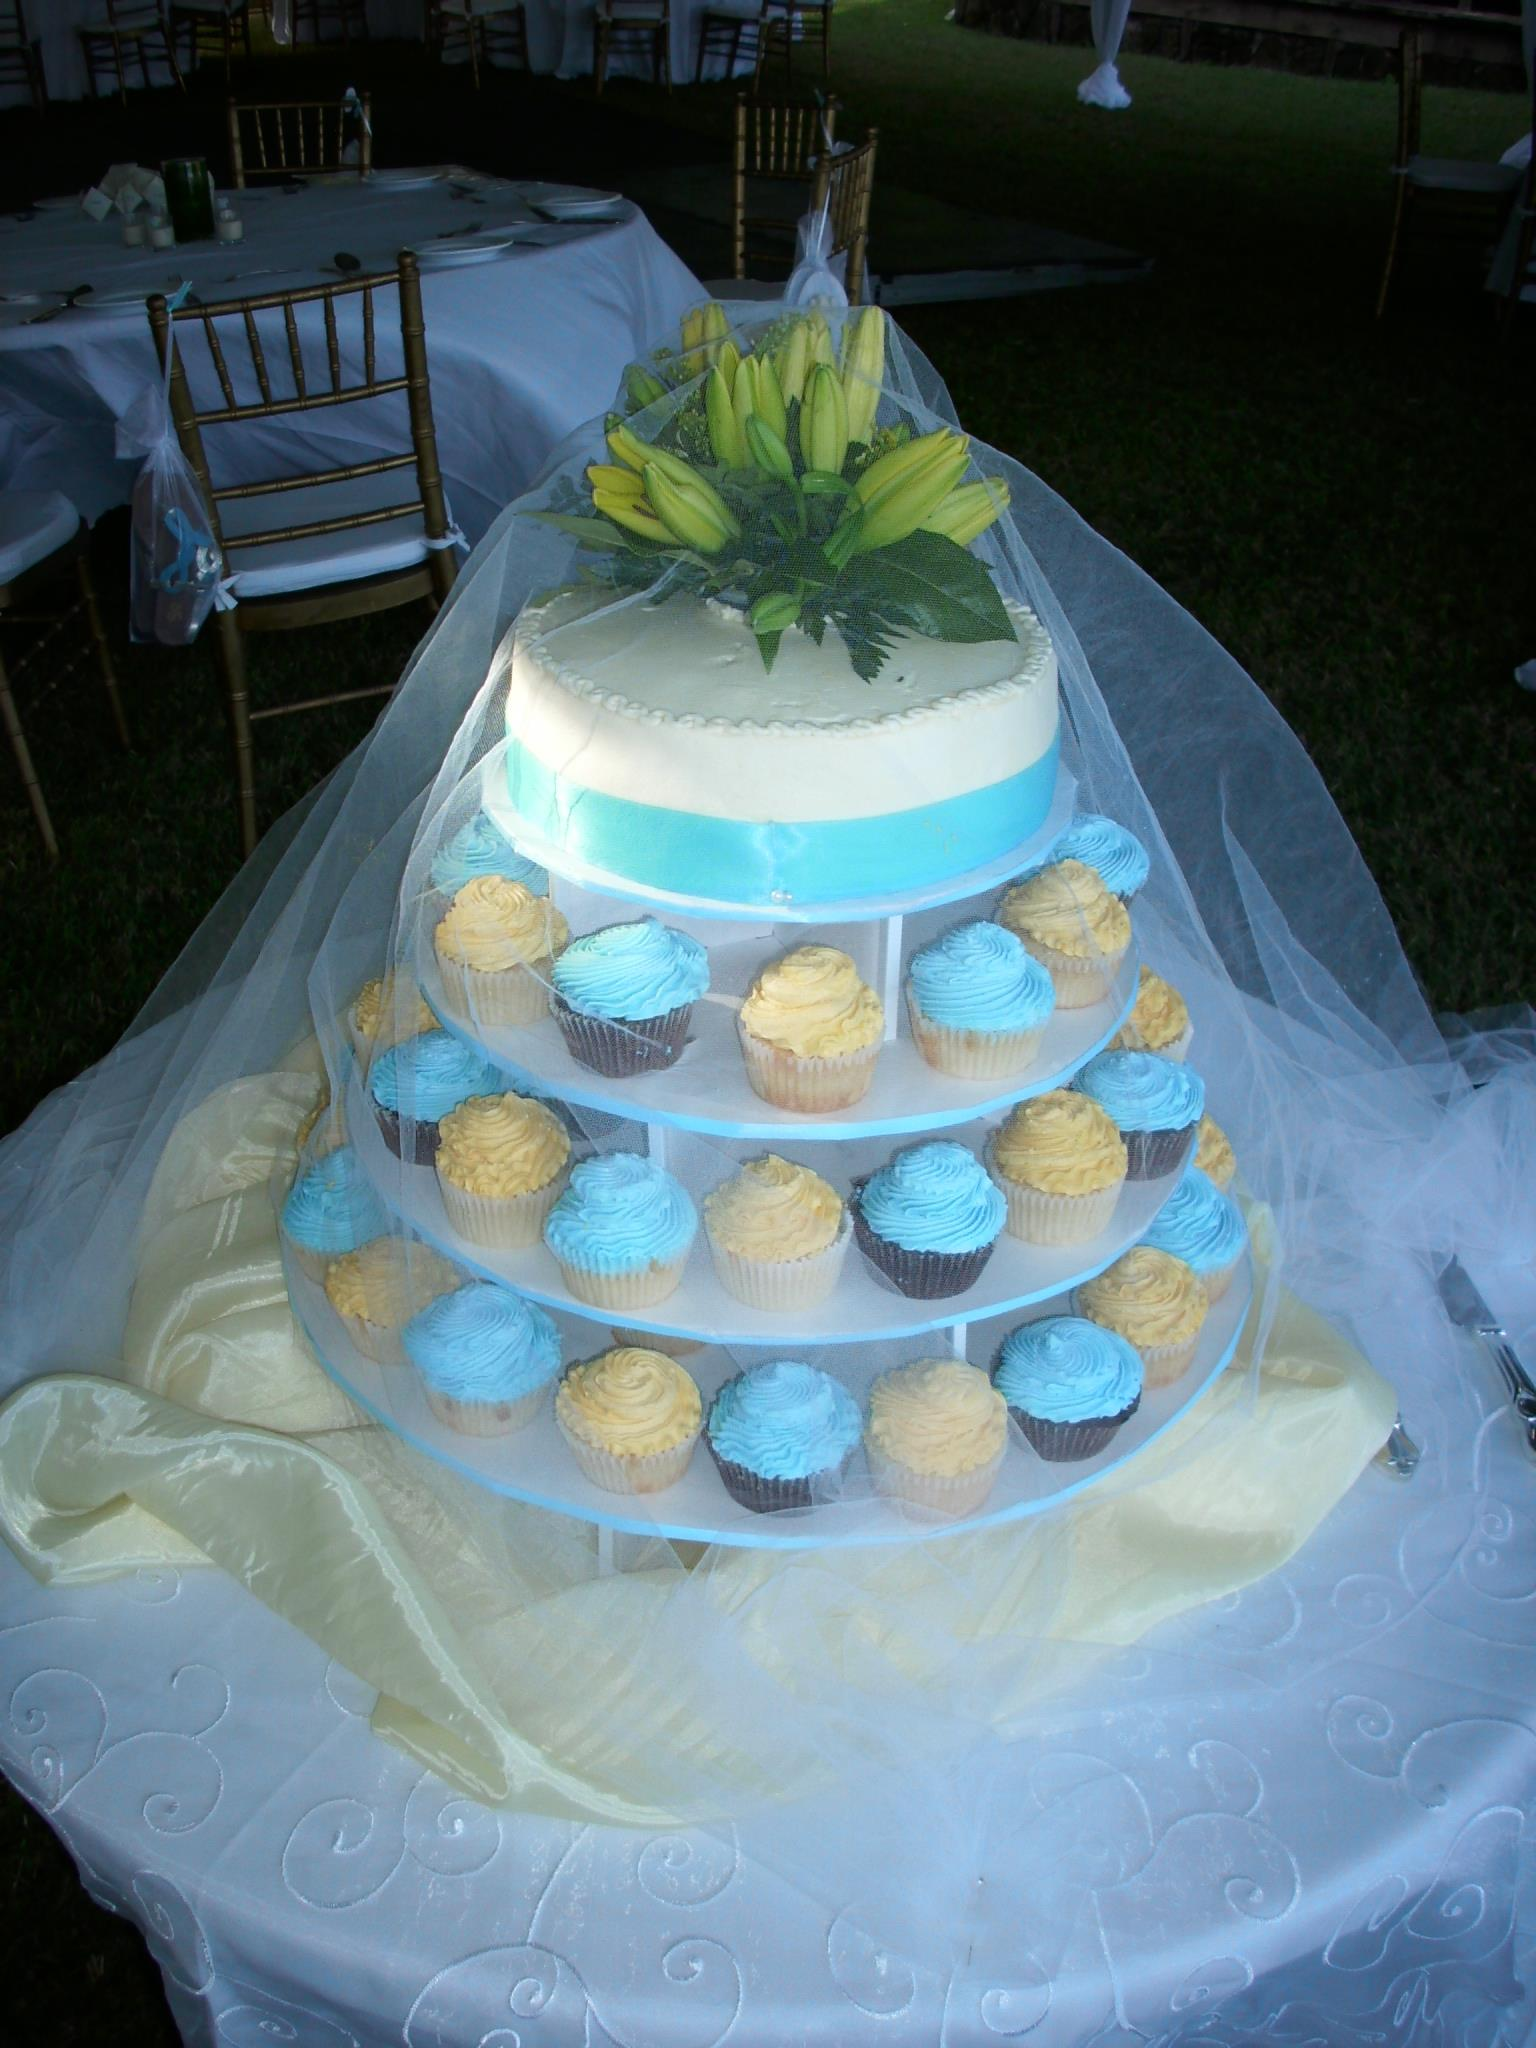 jamaican wedding cake - photo #2